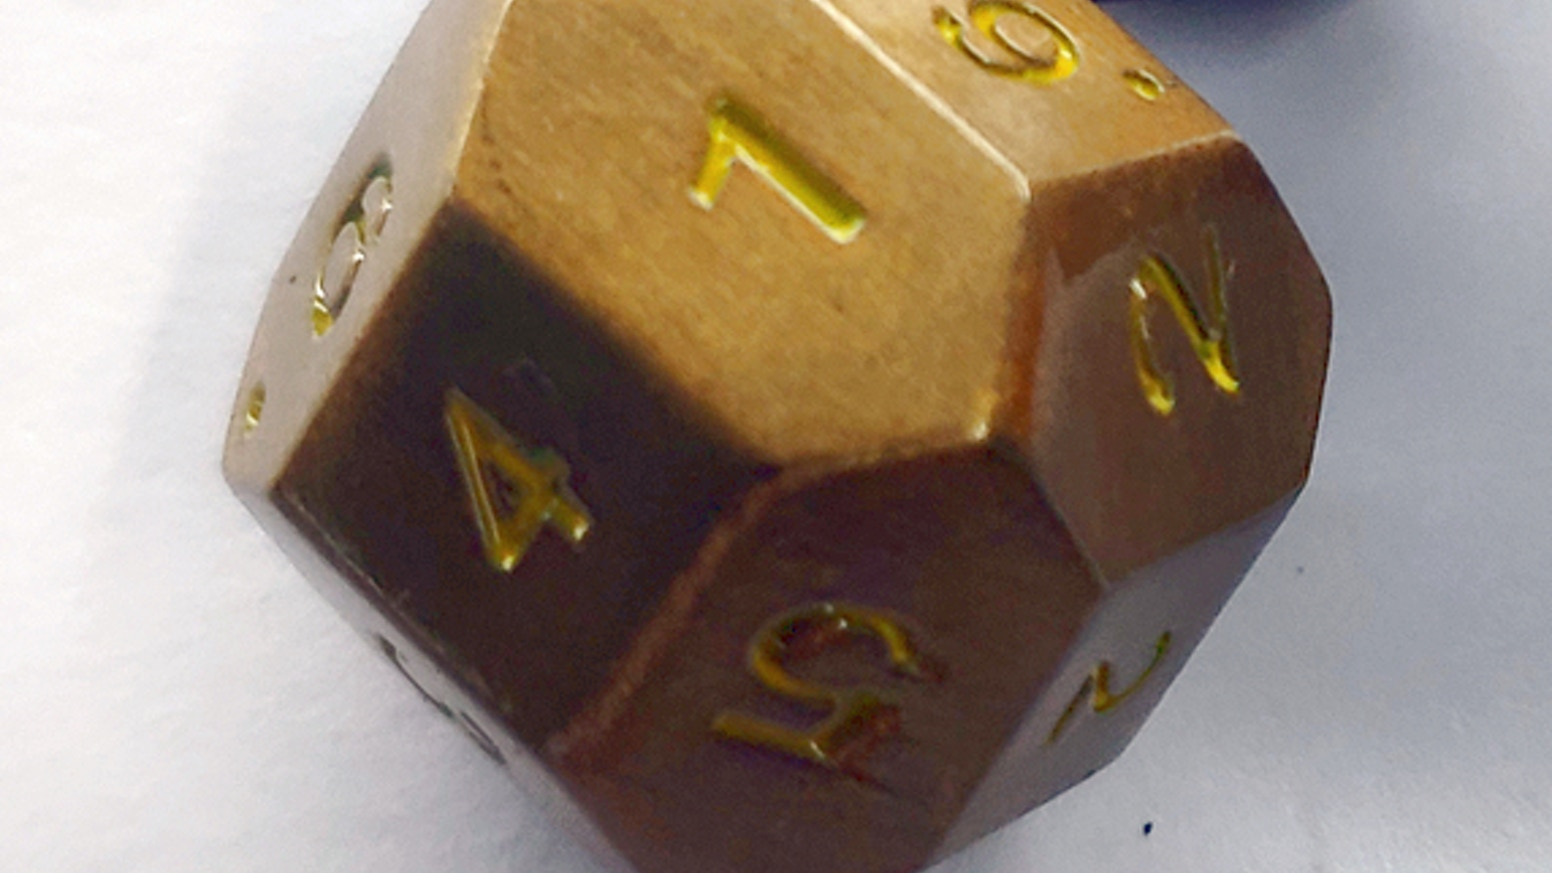 A better kind of dice that replaces traditional polyhedral dice.